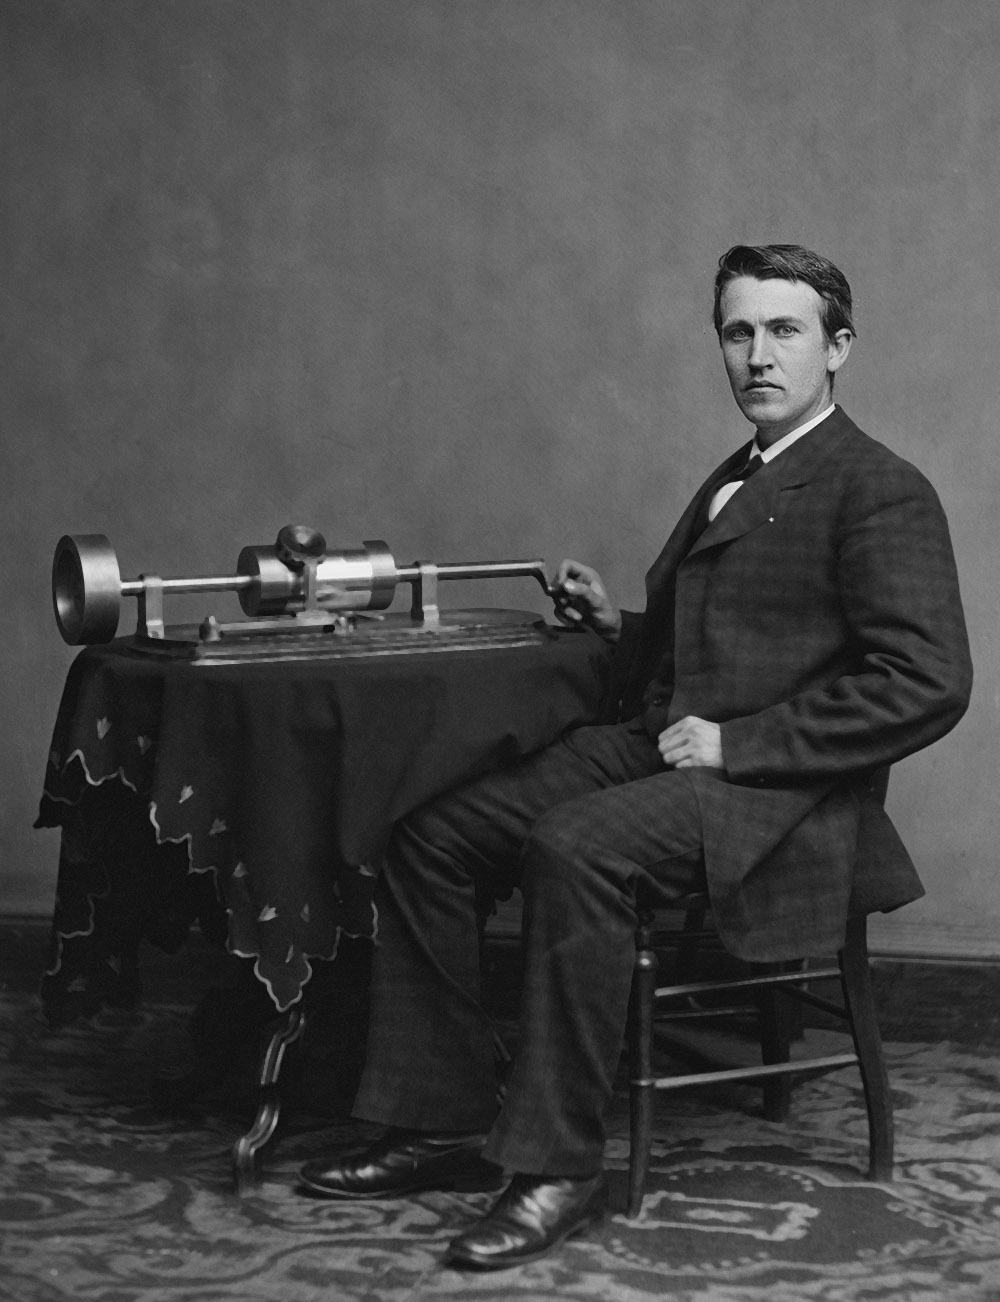 Thomas Edison with his Cylinder Phonograph